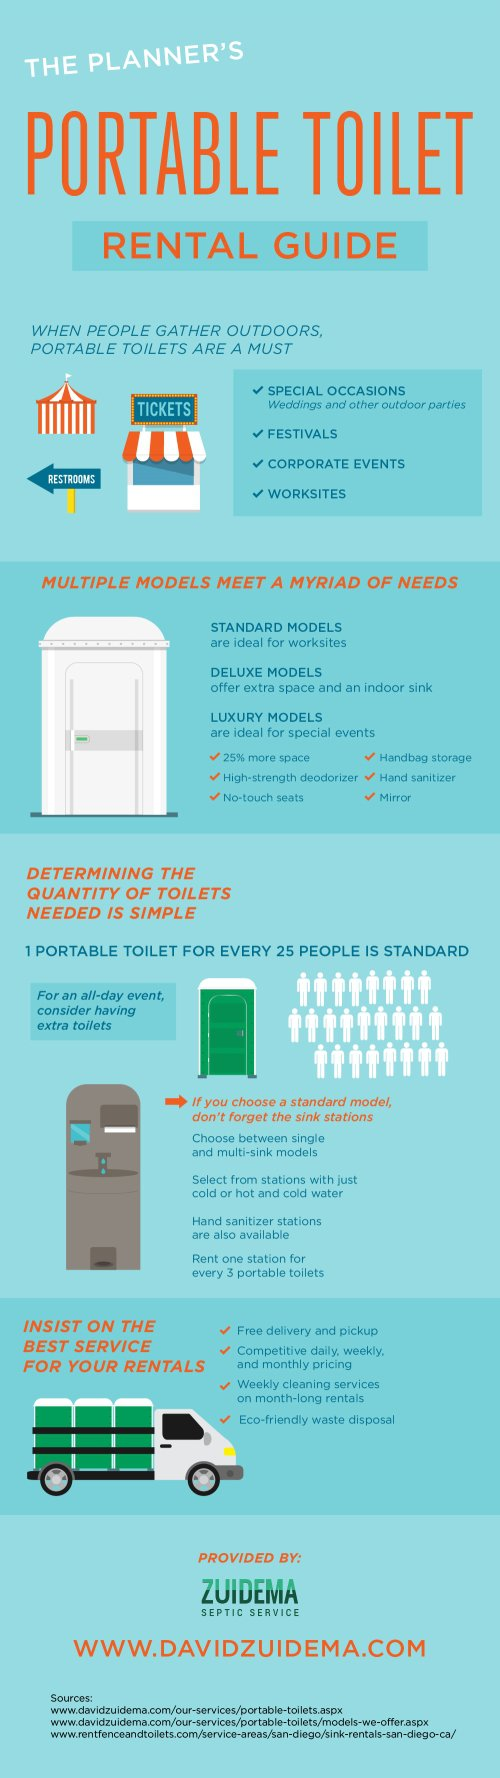 The Planner's Portable Toilet Rental Guide